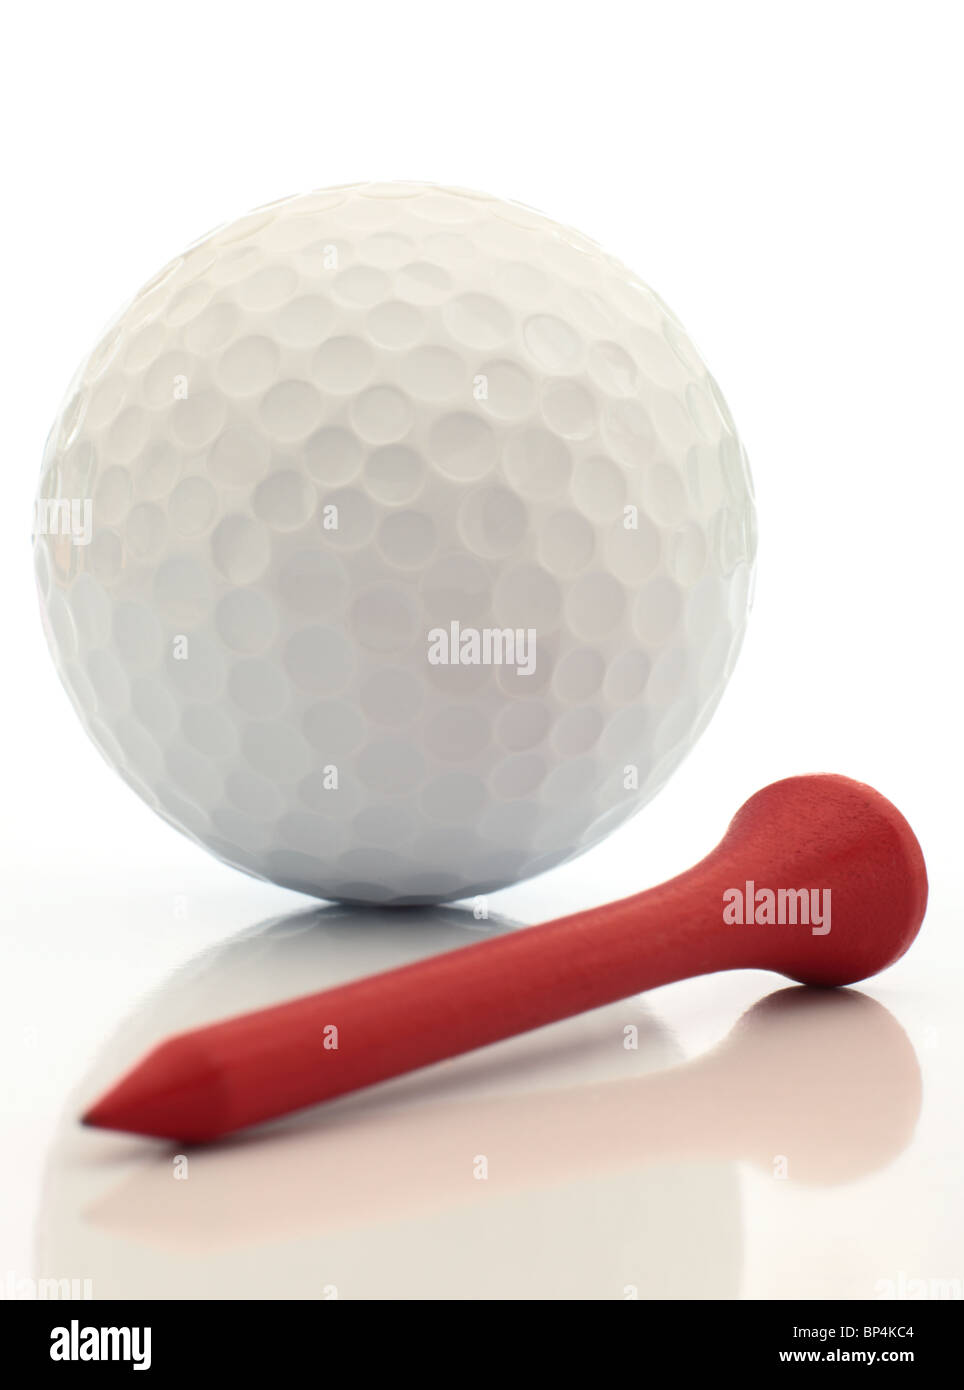 A golf ball and red tee close up reflected. This image is exclusive to Alamy. - Stock Image